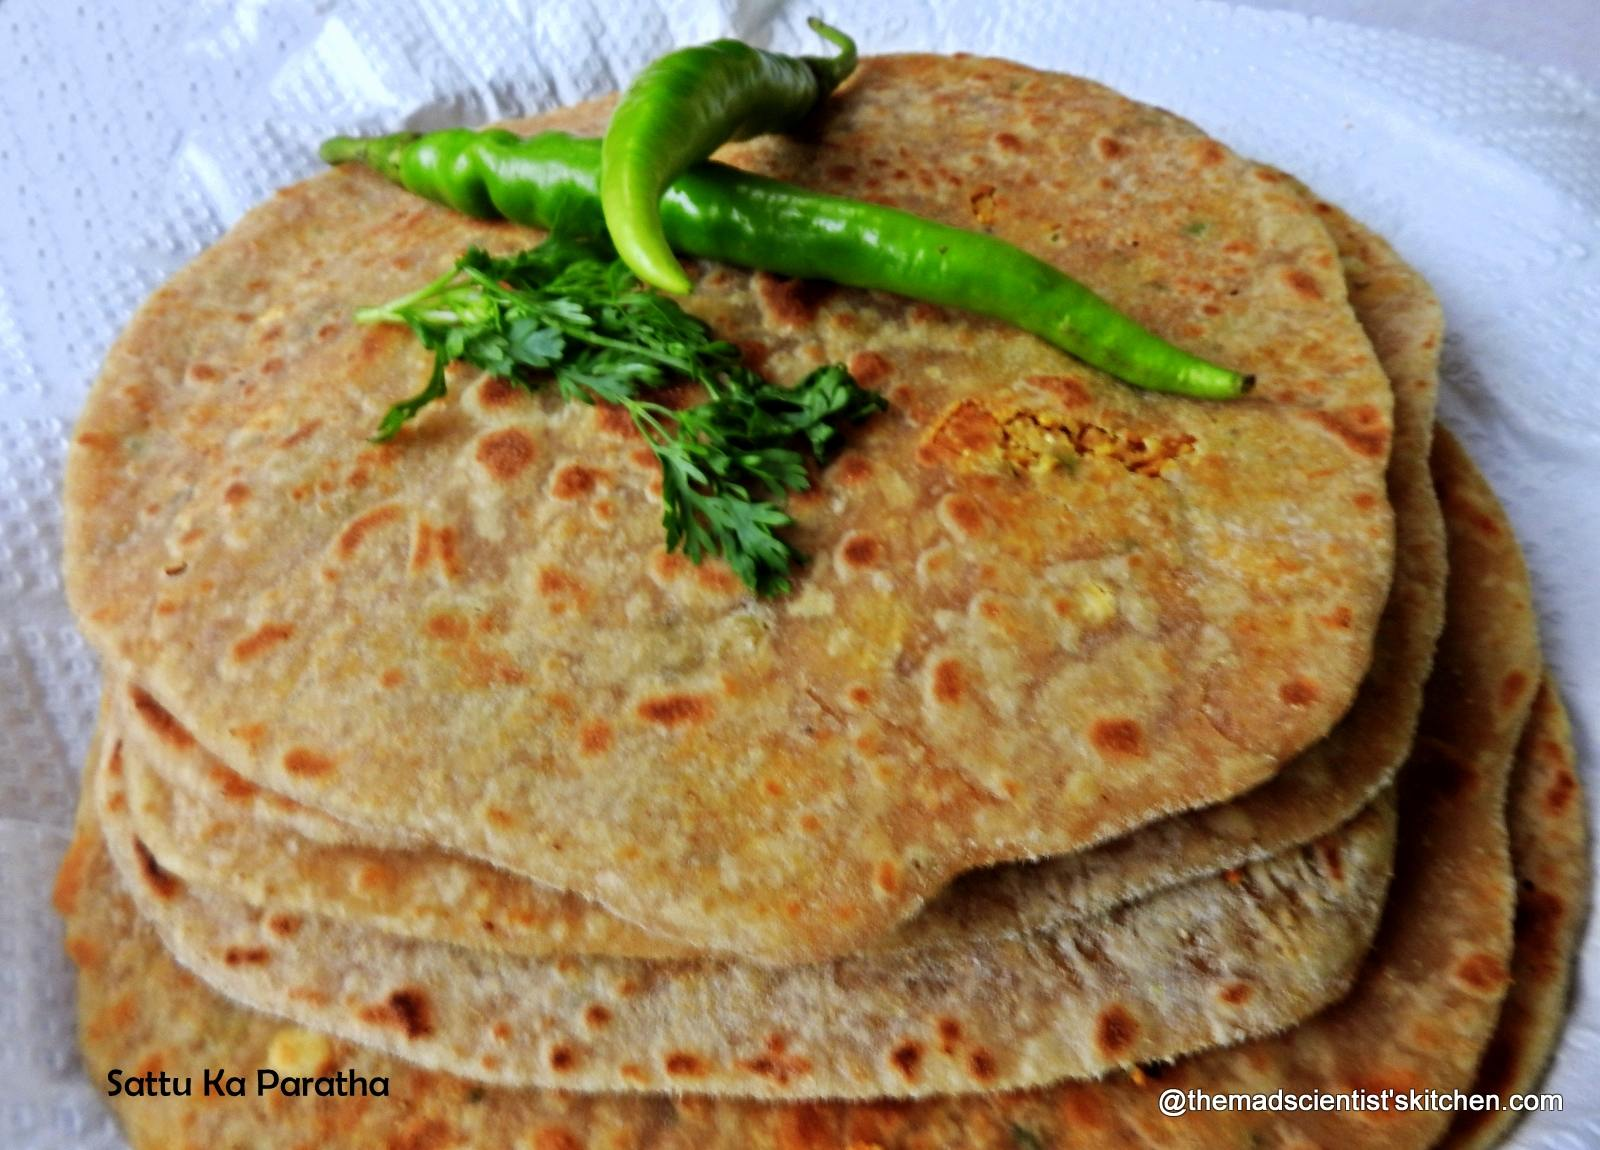 Nutritious Sattu ka Paratha, an Indian Bread Stuffed With Roasted Gram